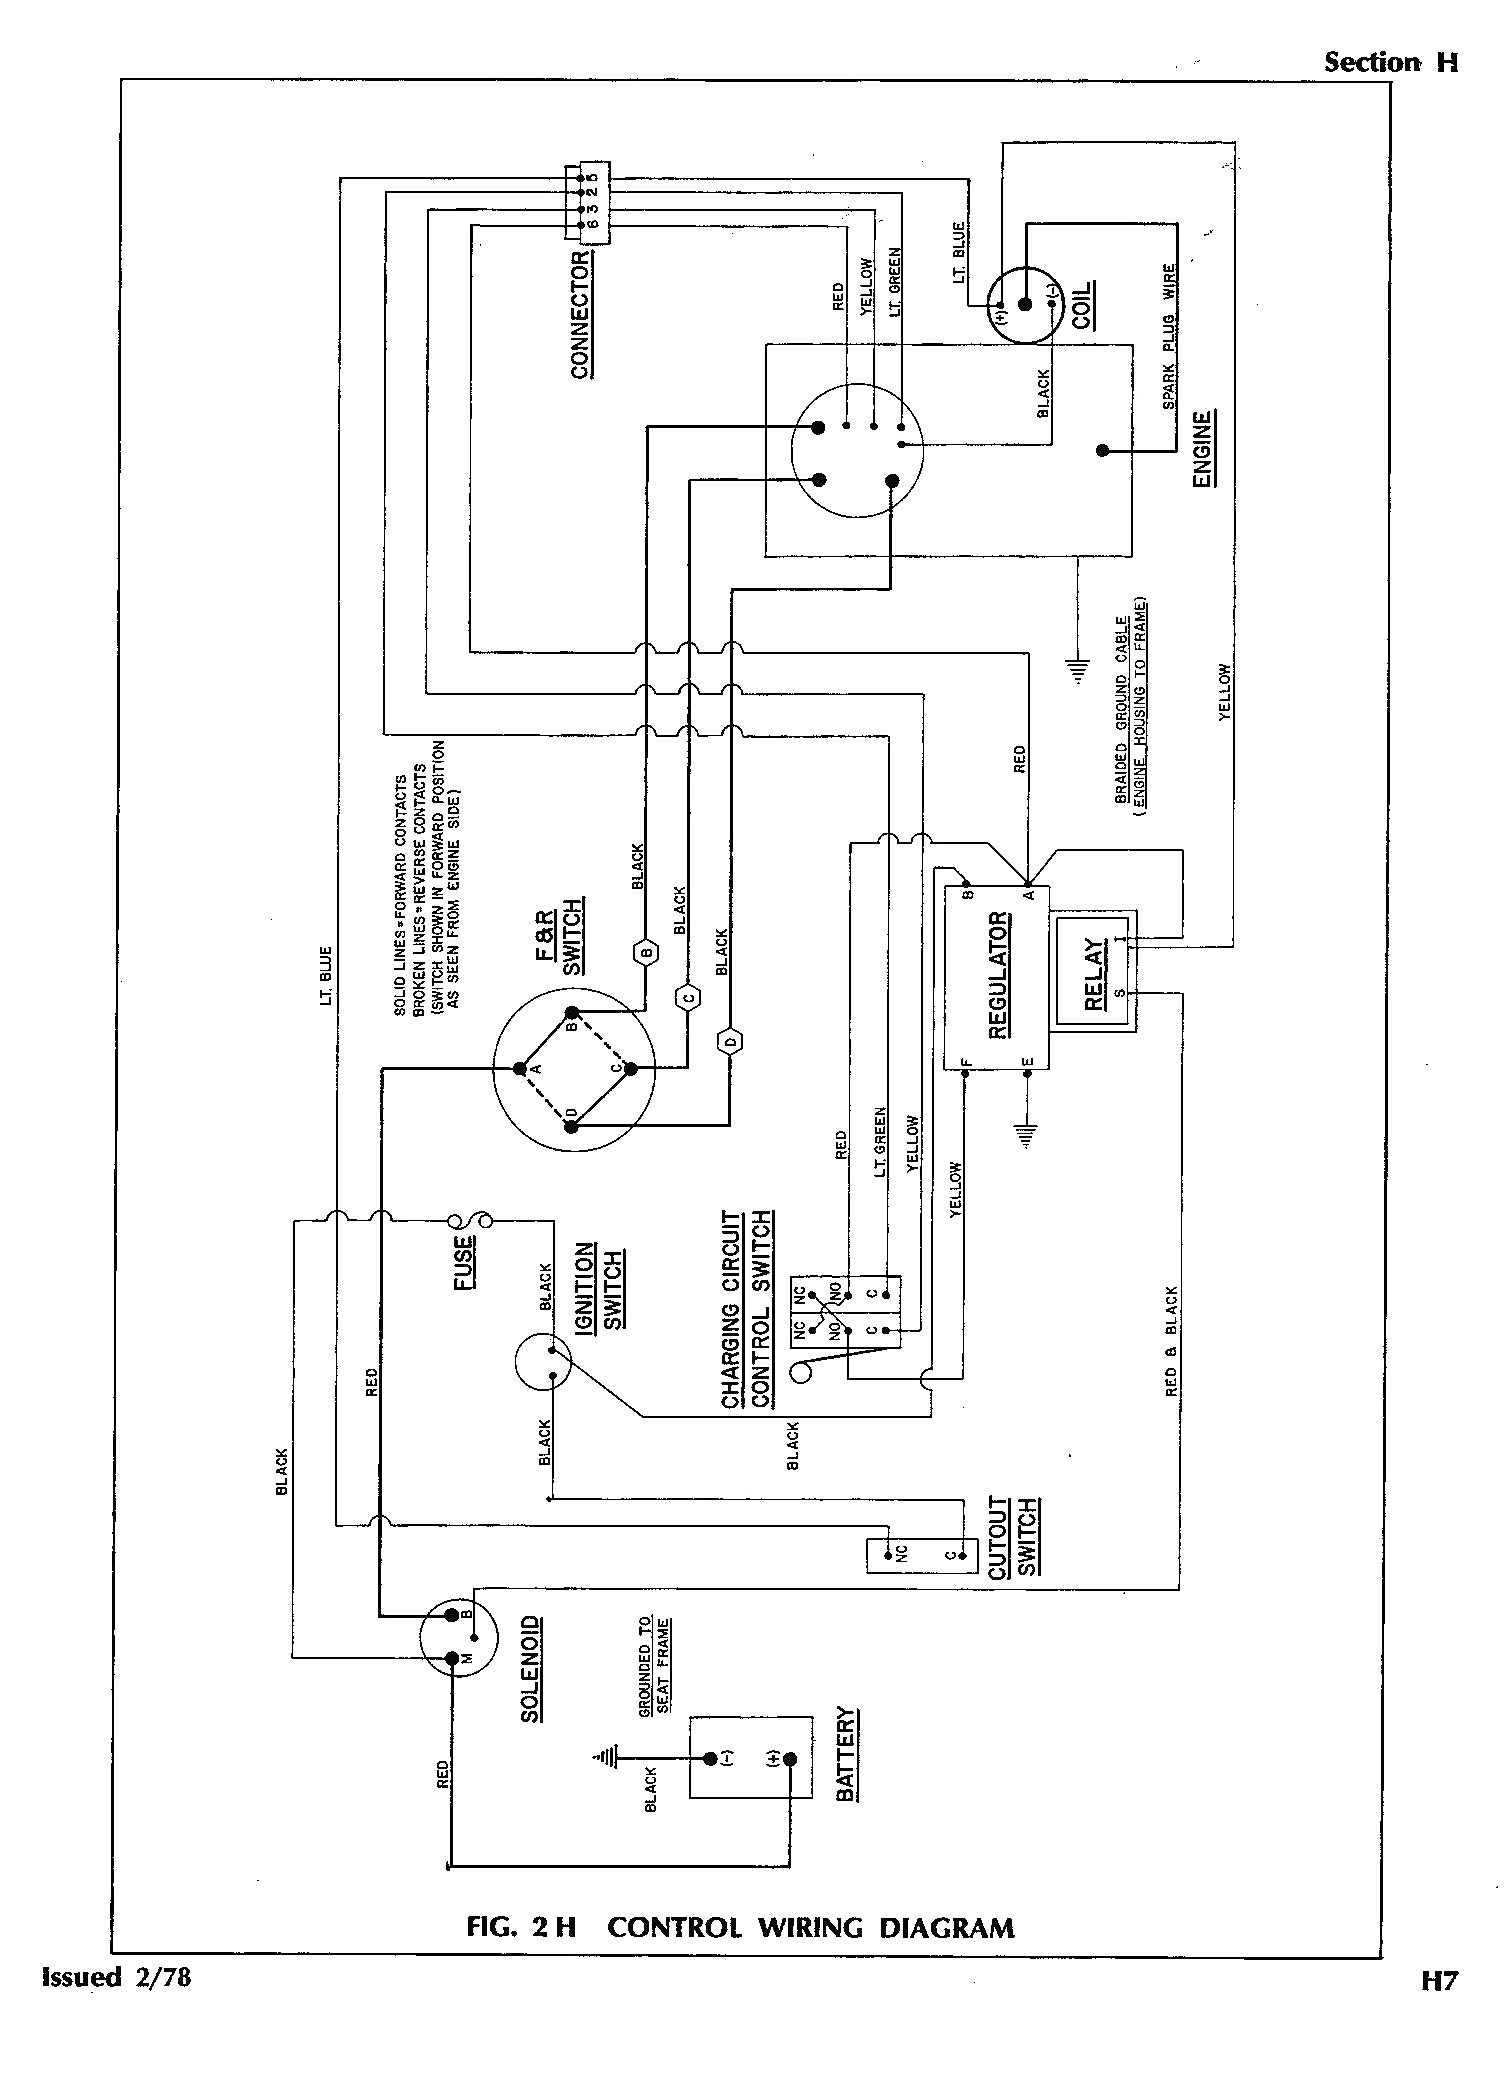 yamaha golf cart wiring diagram diagram  need wiring diagram for 1990 ezgo golf cart full version yamaha golf buggy wiring diagram wiring diagram for 1990 ezgo golf cart